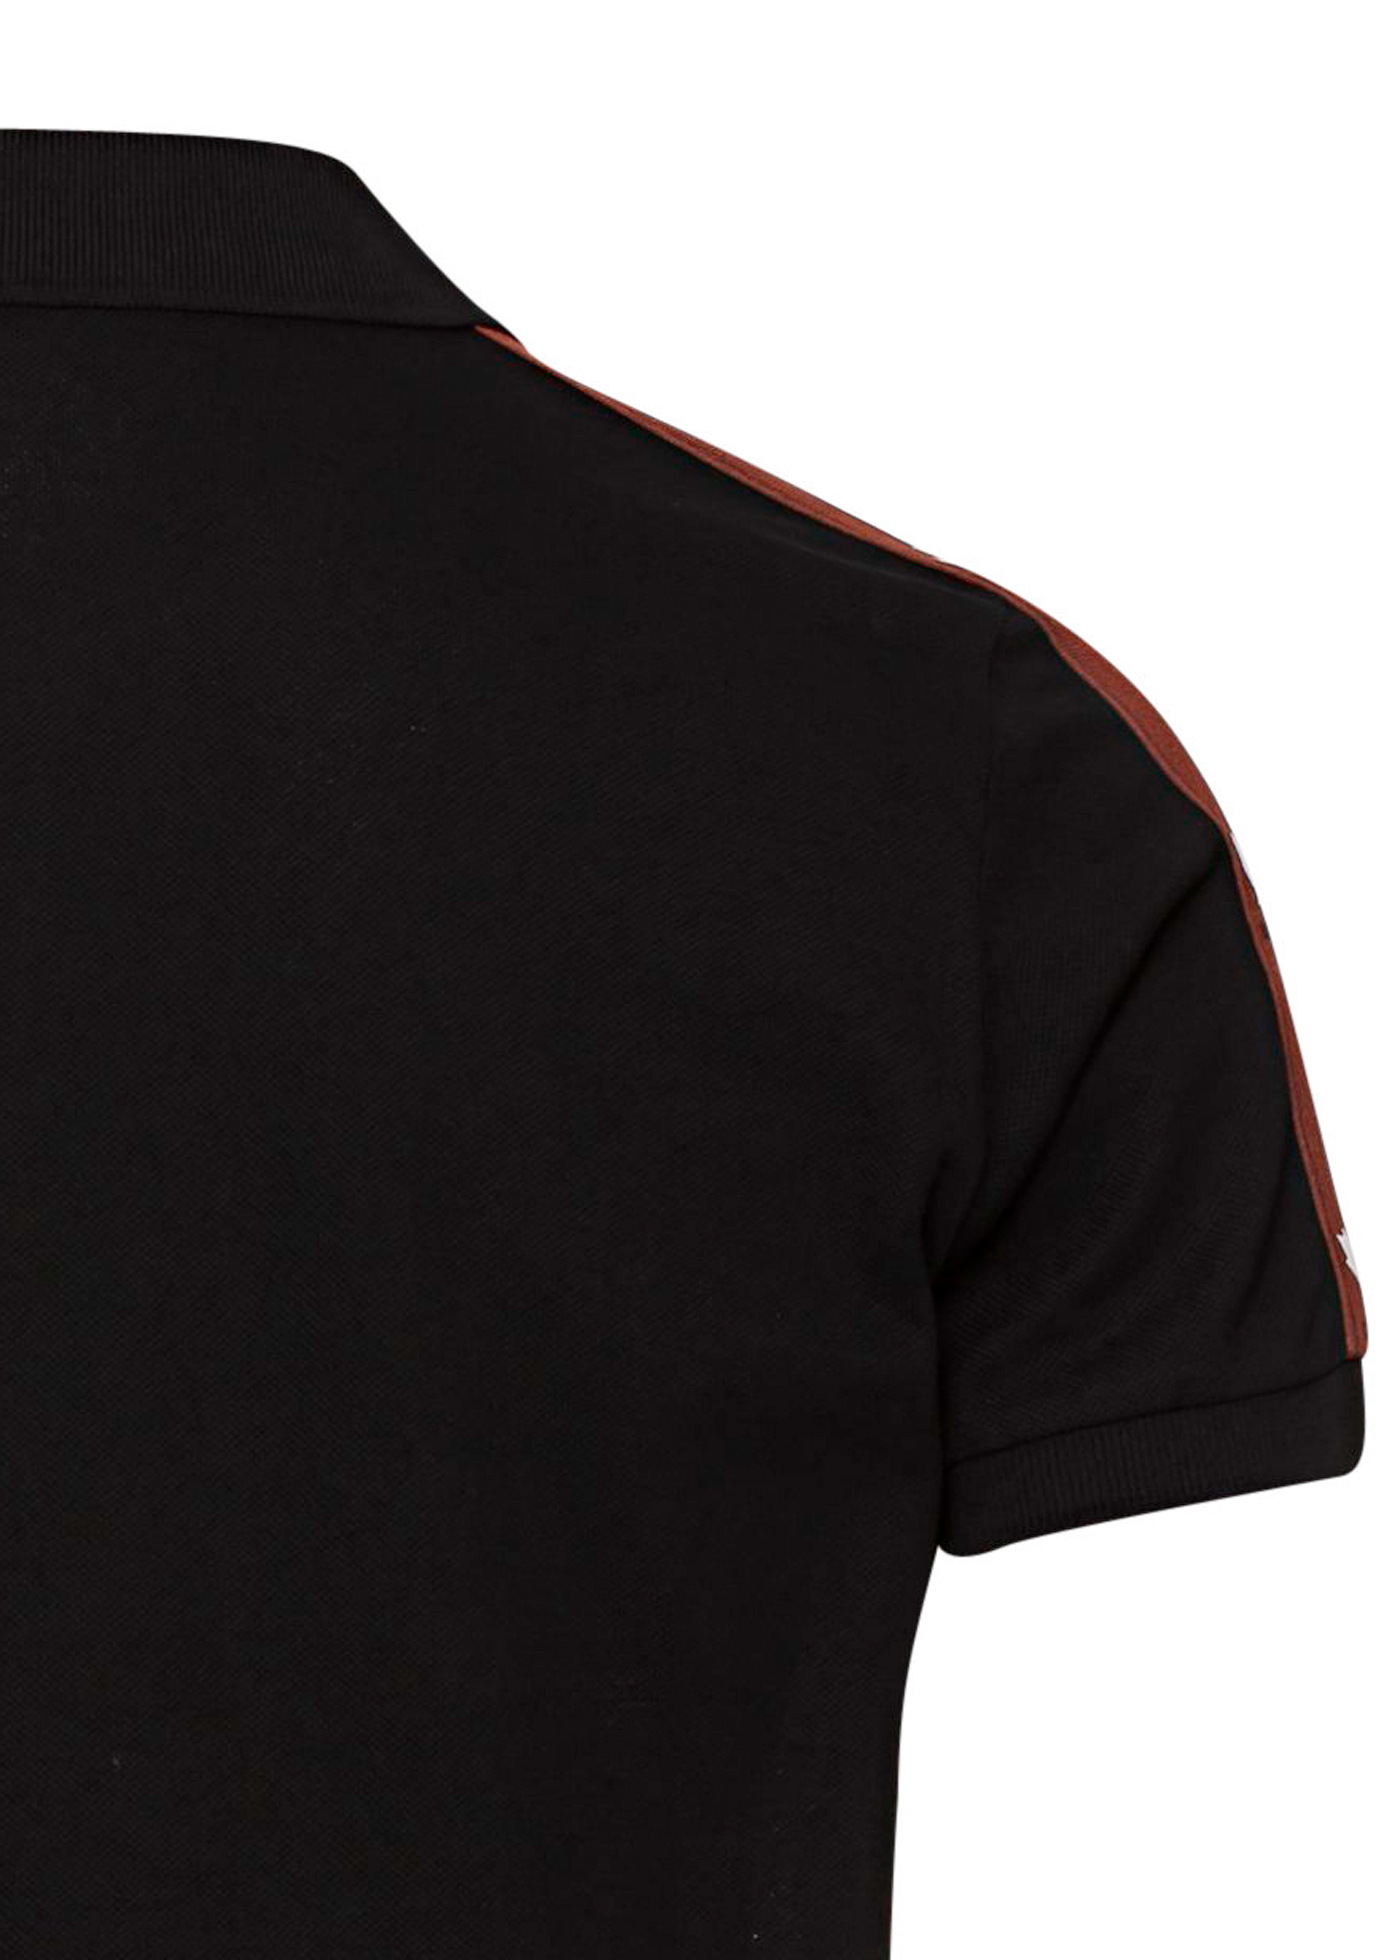 POLO SHIRT image number 3